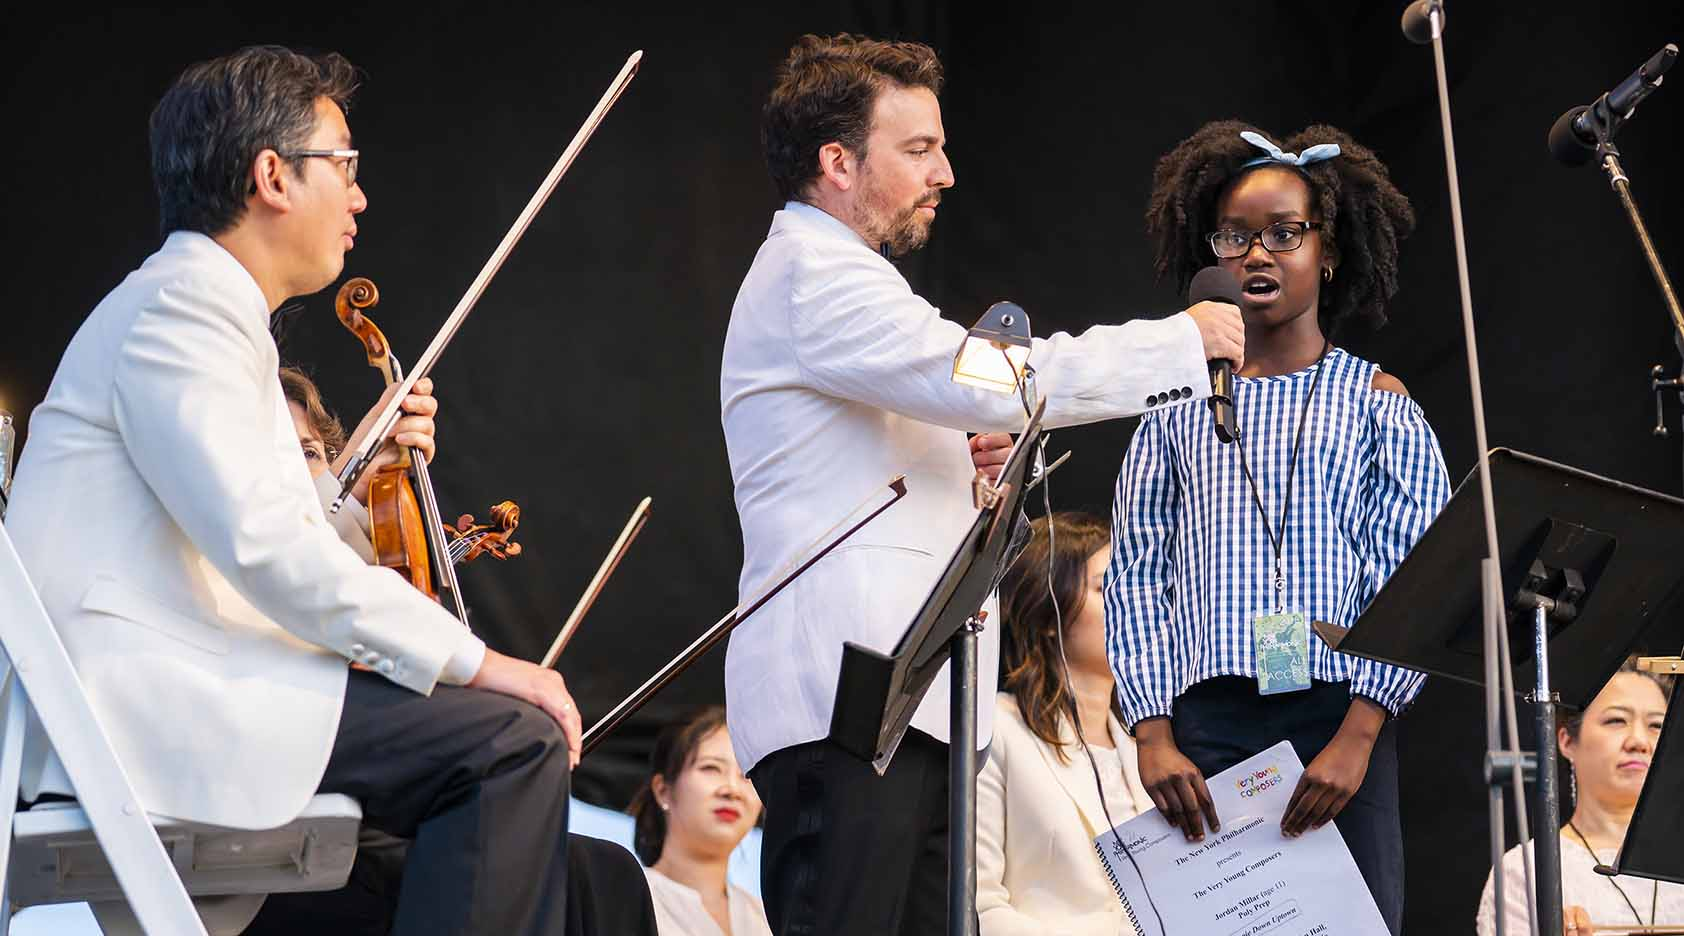 New York Philharmonic Very Young Composer Jordan Millar being interviewed onstage at a Concerts in the Parks concert in 2018